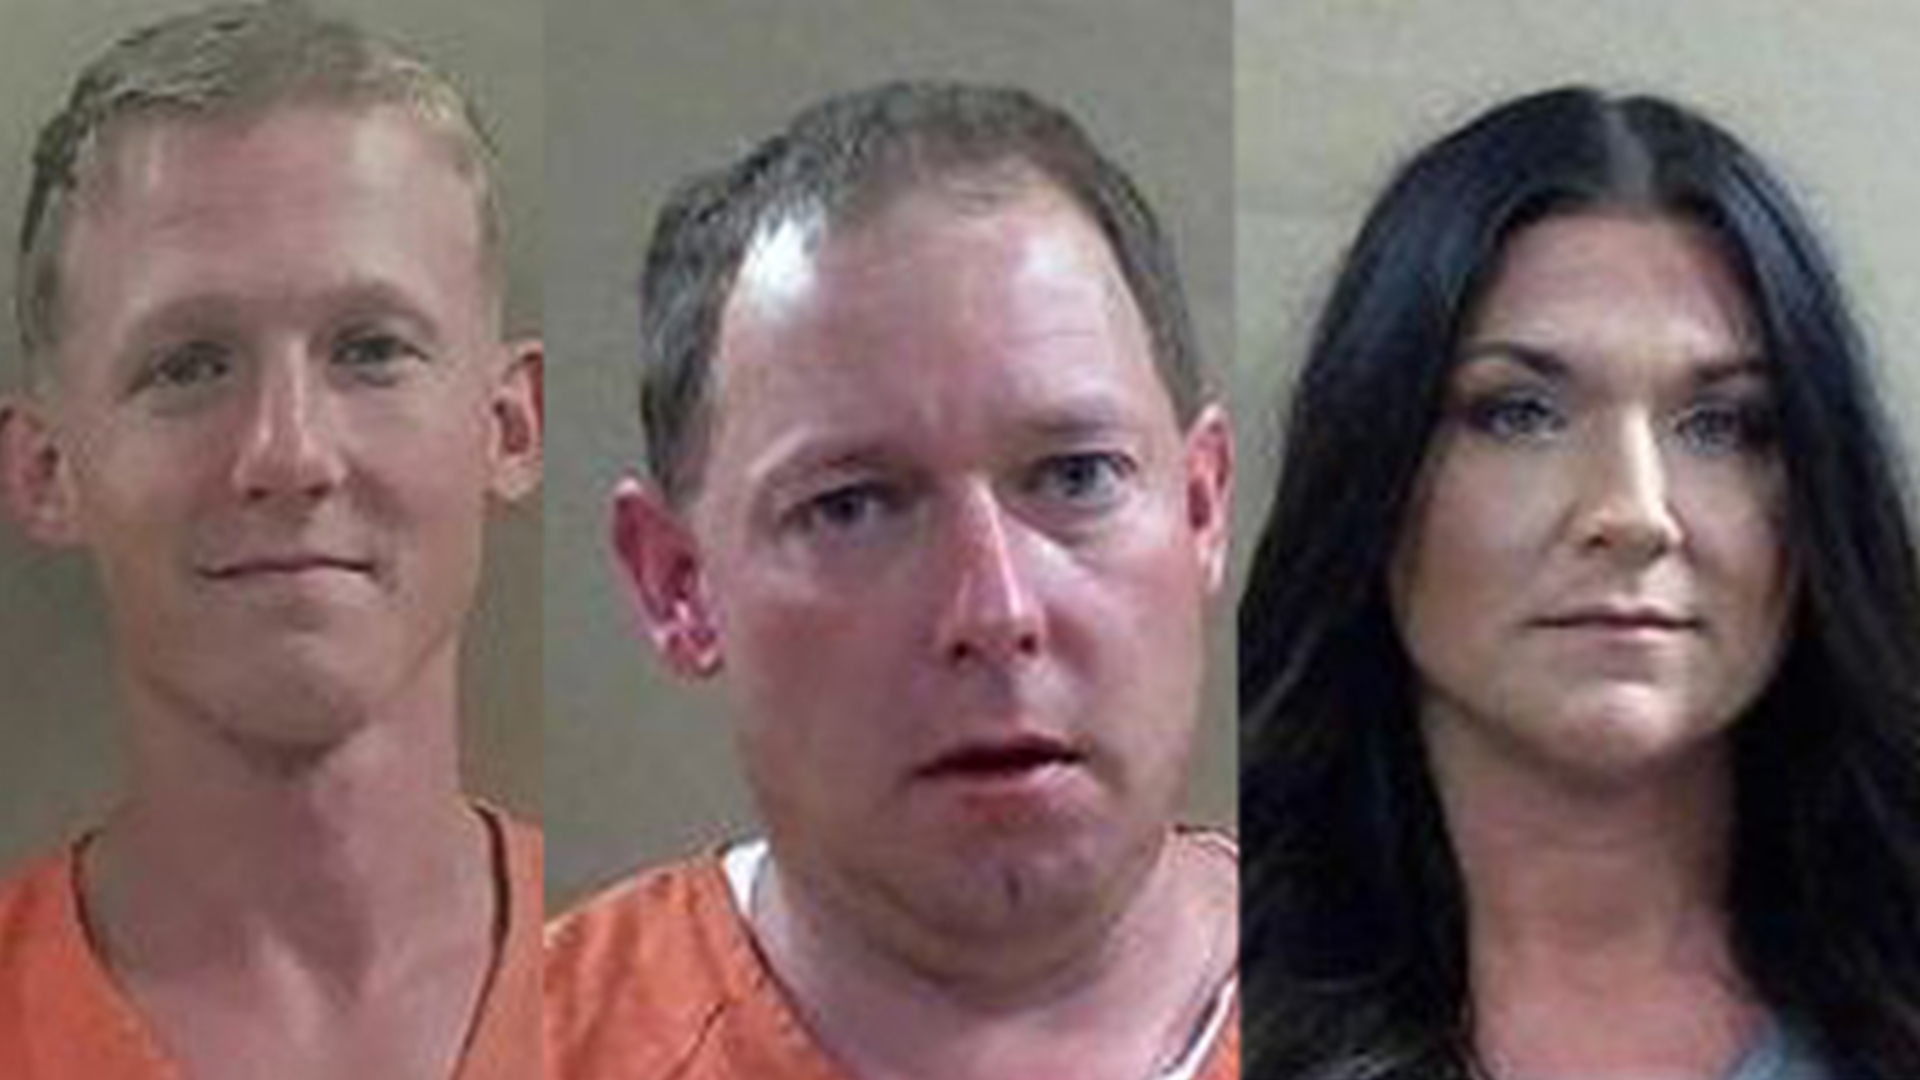 Court documents show how 3 people helped Kirby Wallace while